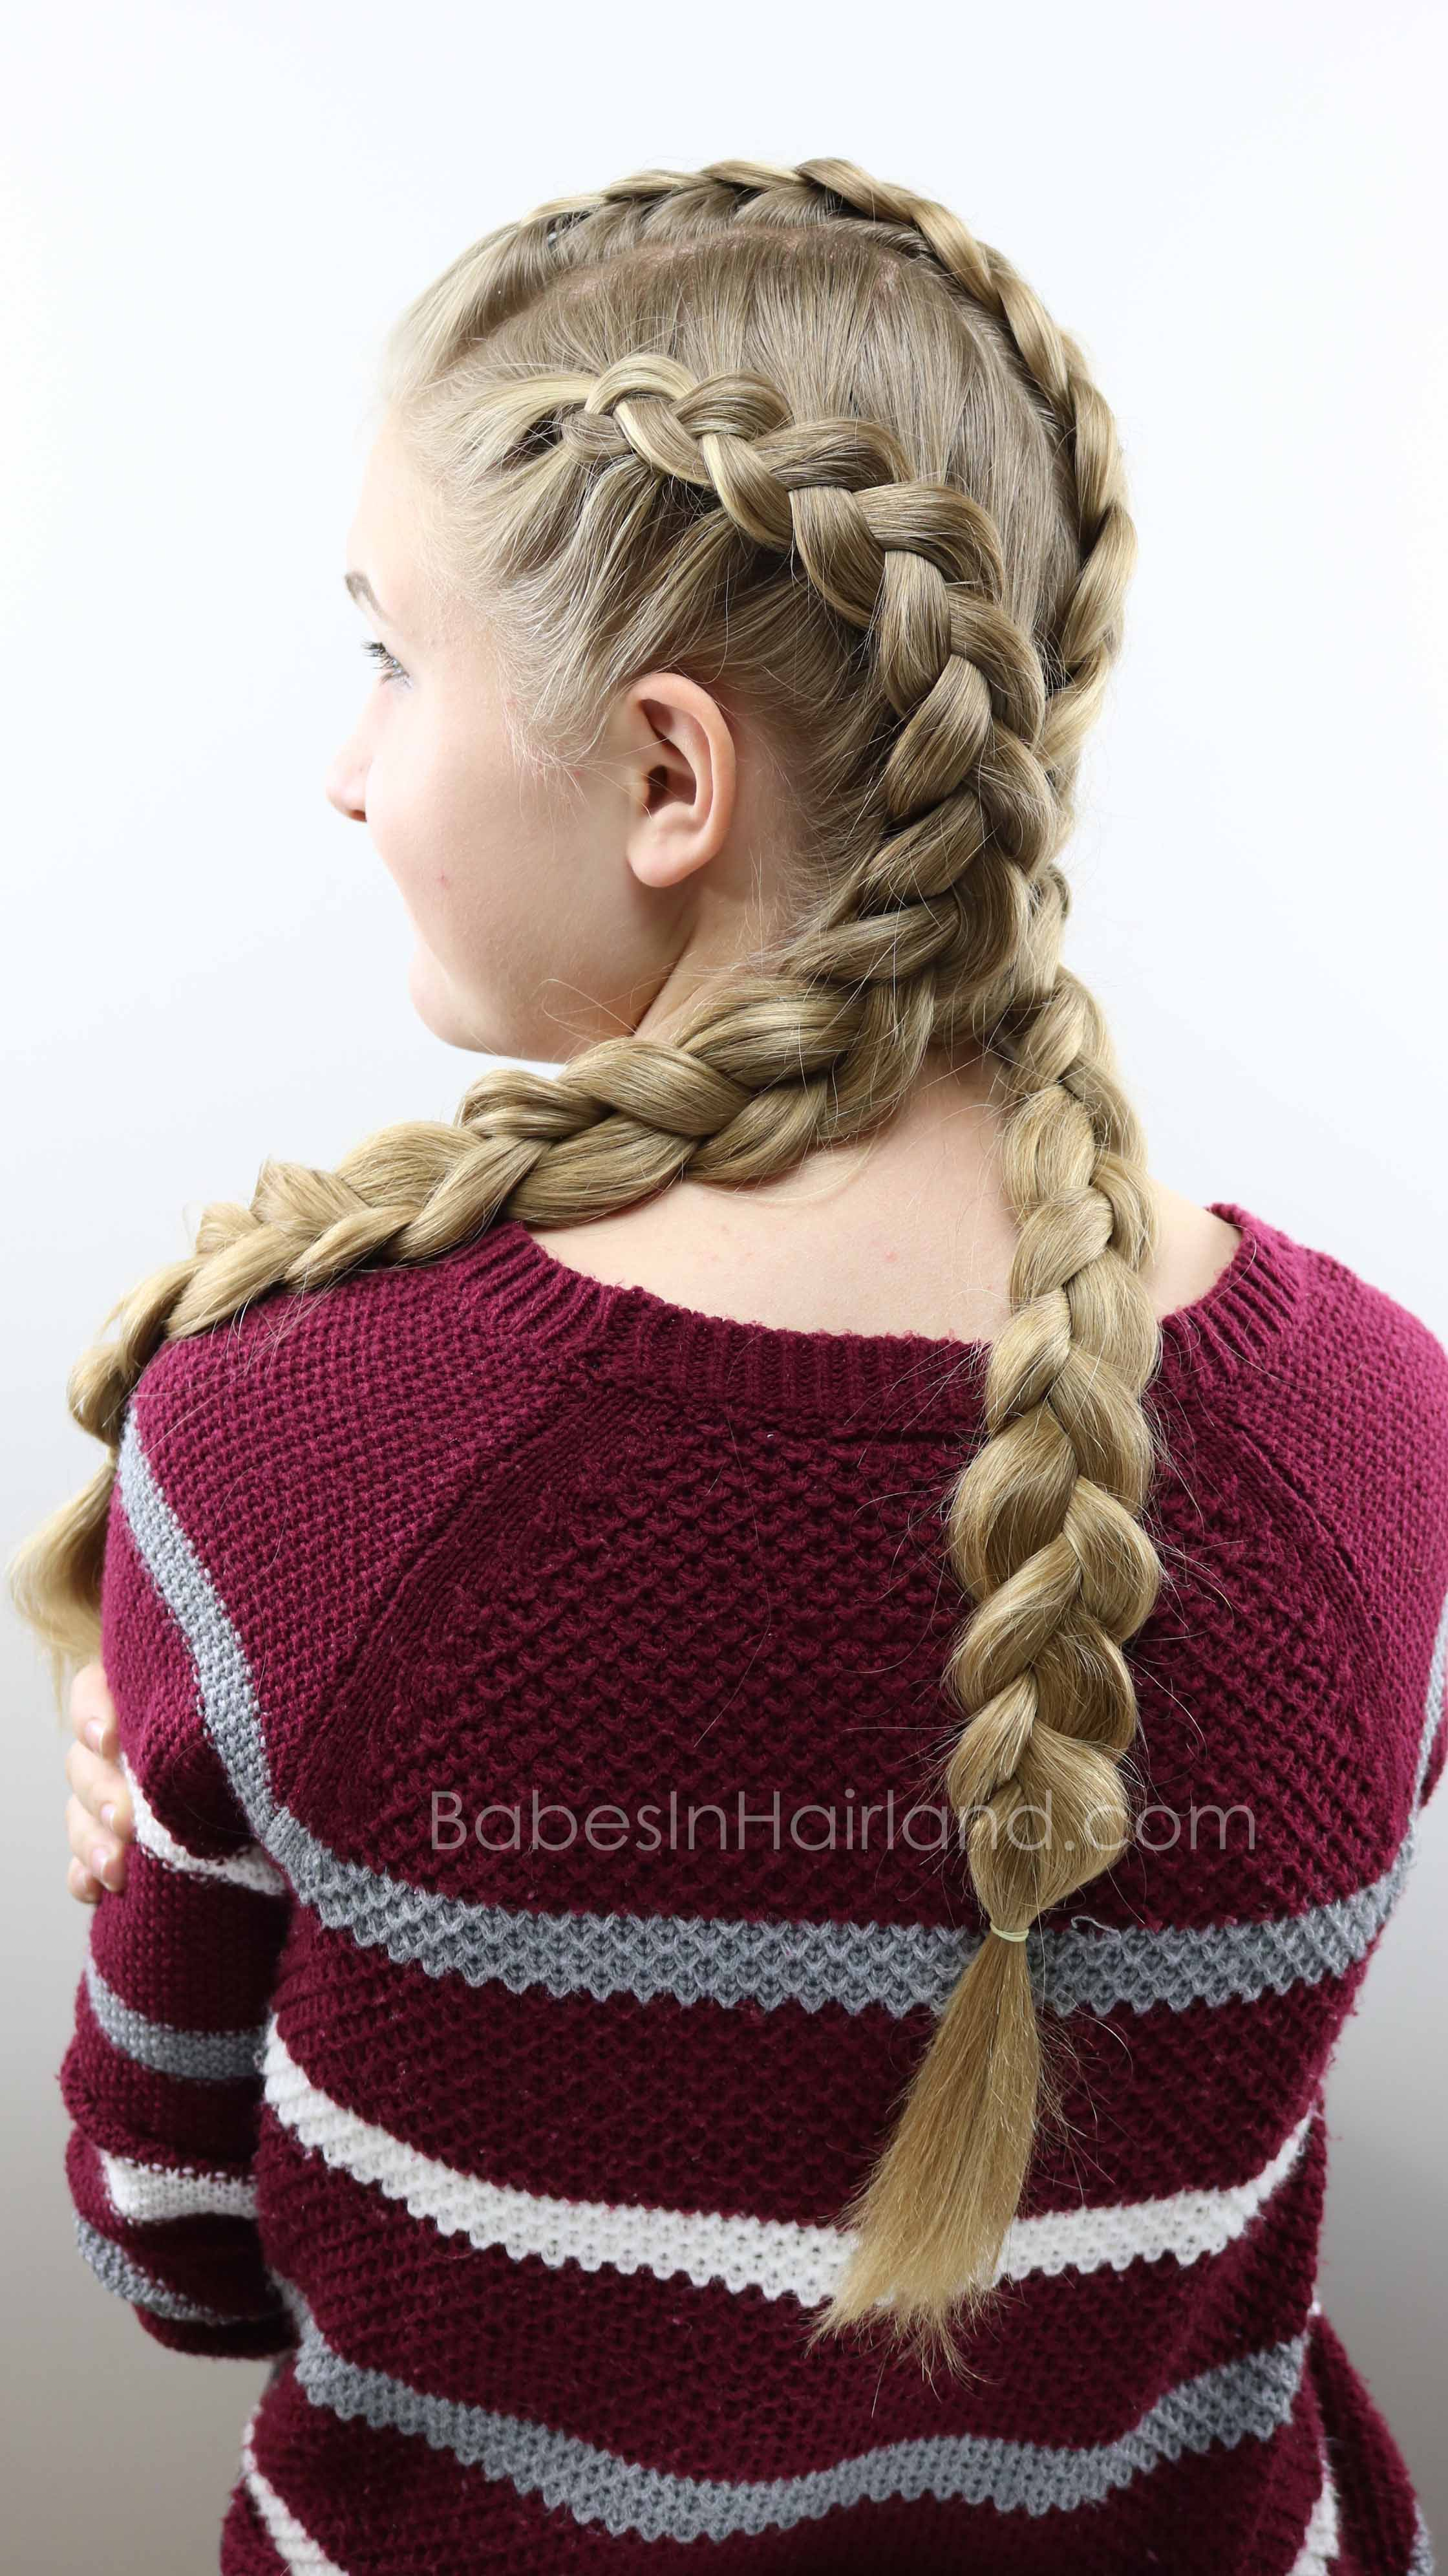 Triple Double Dutch Braids Hairstyle Beautiful School